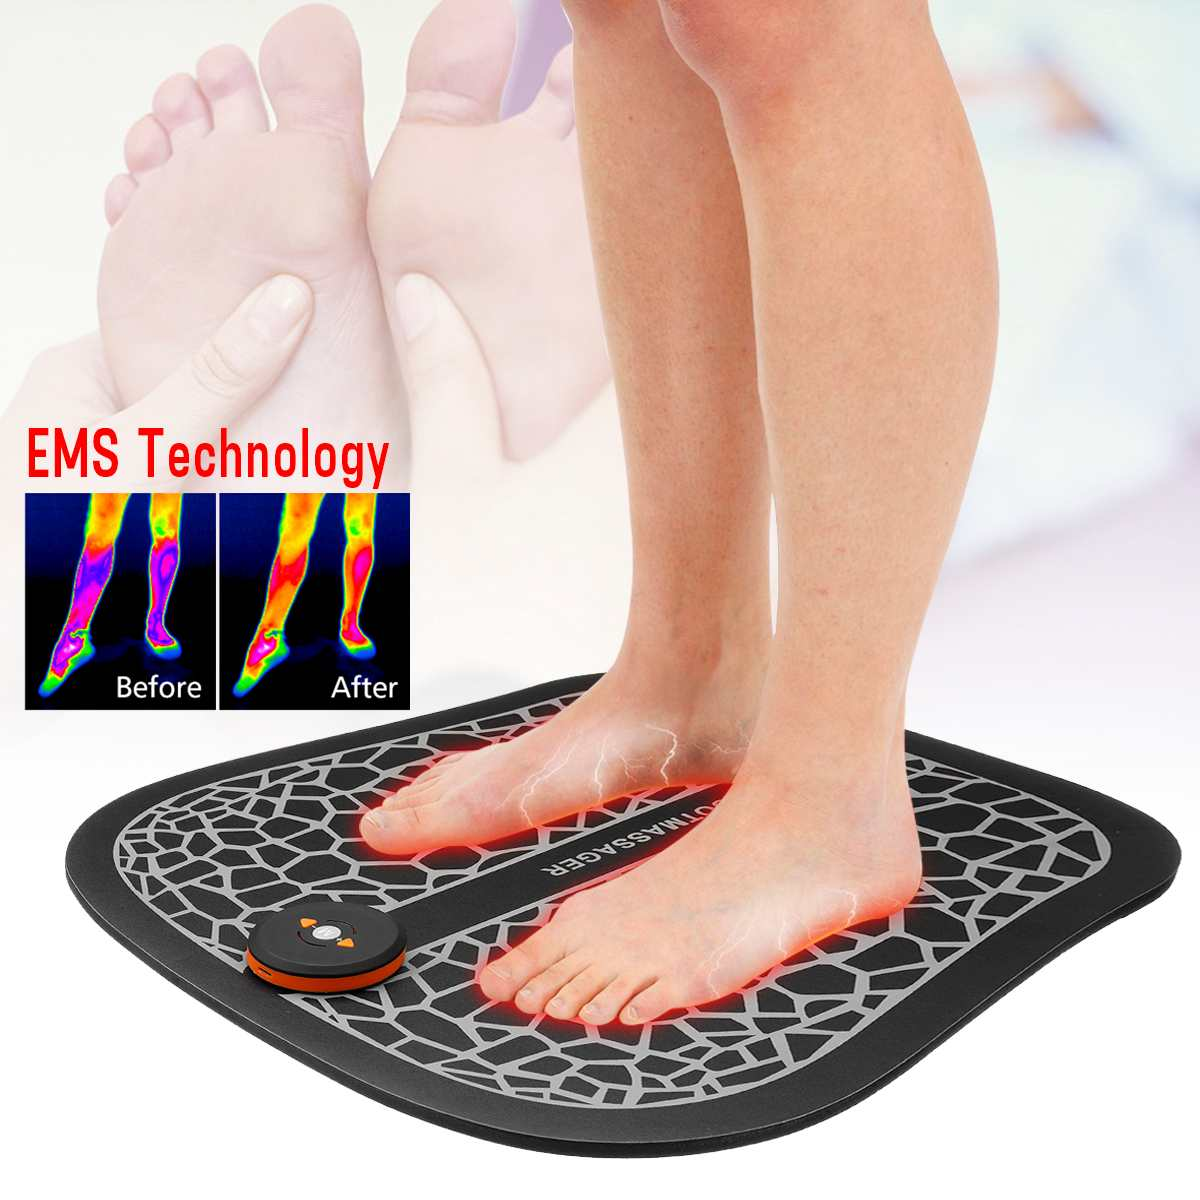 EMS Physiotherapy Foot Massage Mat Pad Electric Muscle Stimulator Vibrator Massager Foot Spa Relaxation Pain Relief Feet